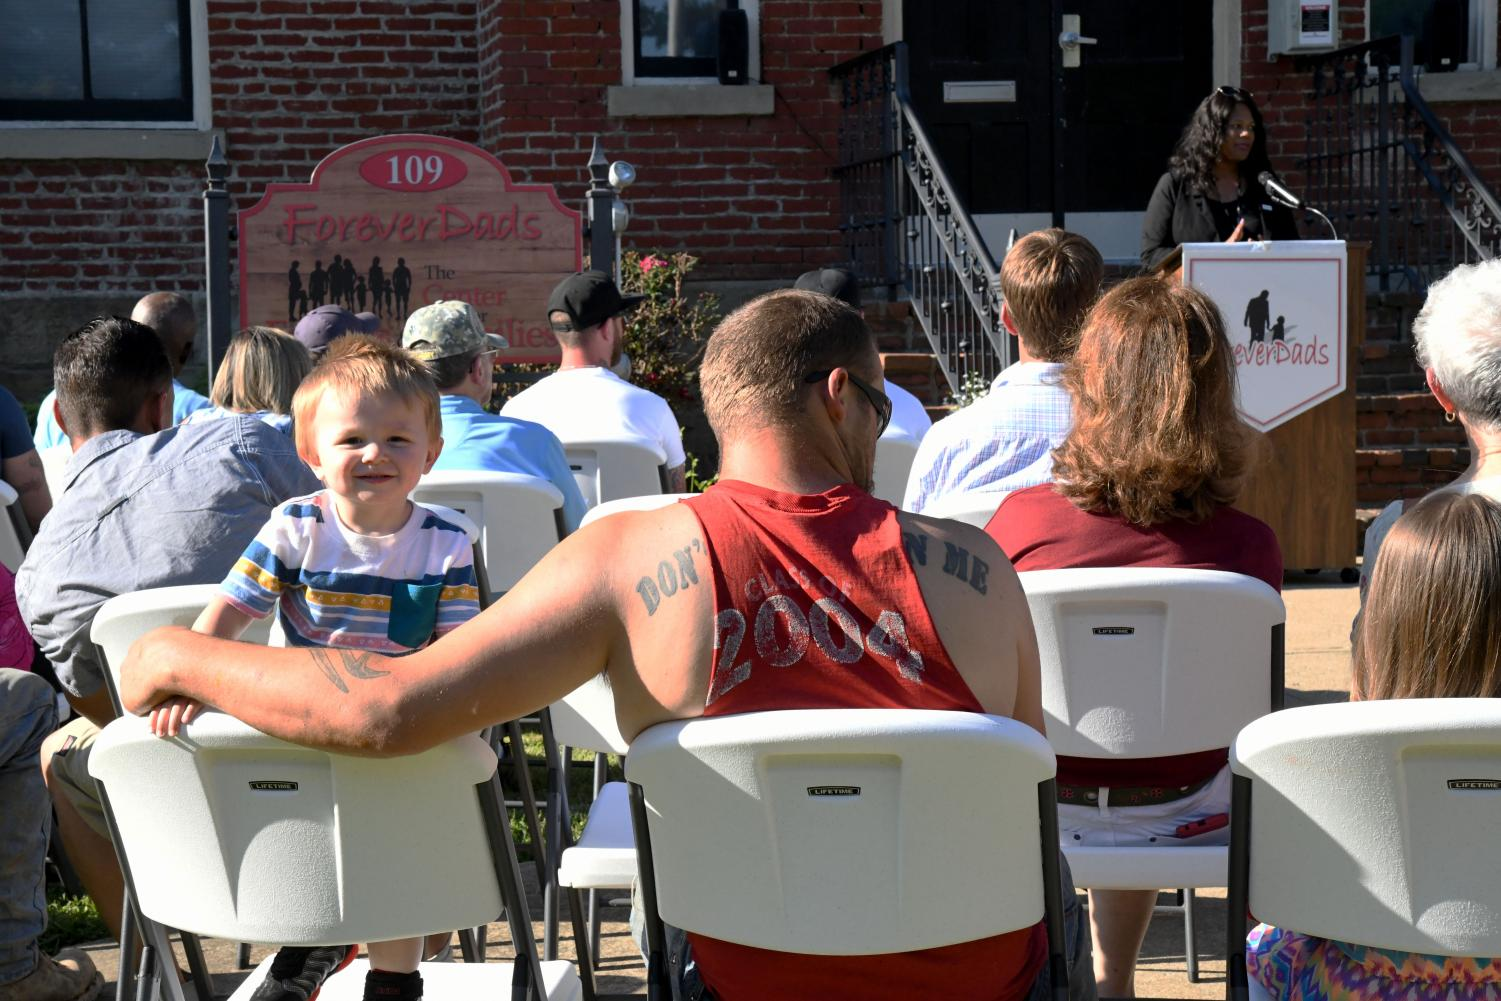 A boy becomes fascinated with the back of the crowd seated on the ForeverDads' lawn as the Executive Director of the Commission on Fatherhood, Kimberly Dent, speaks.